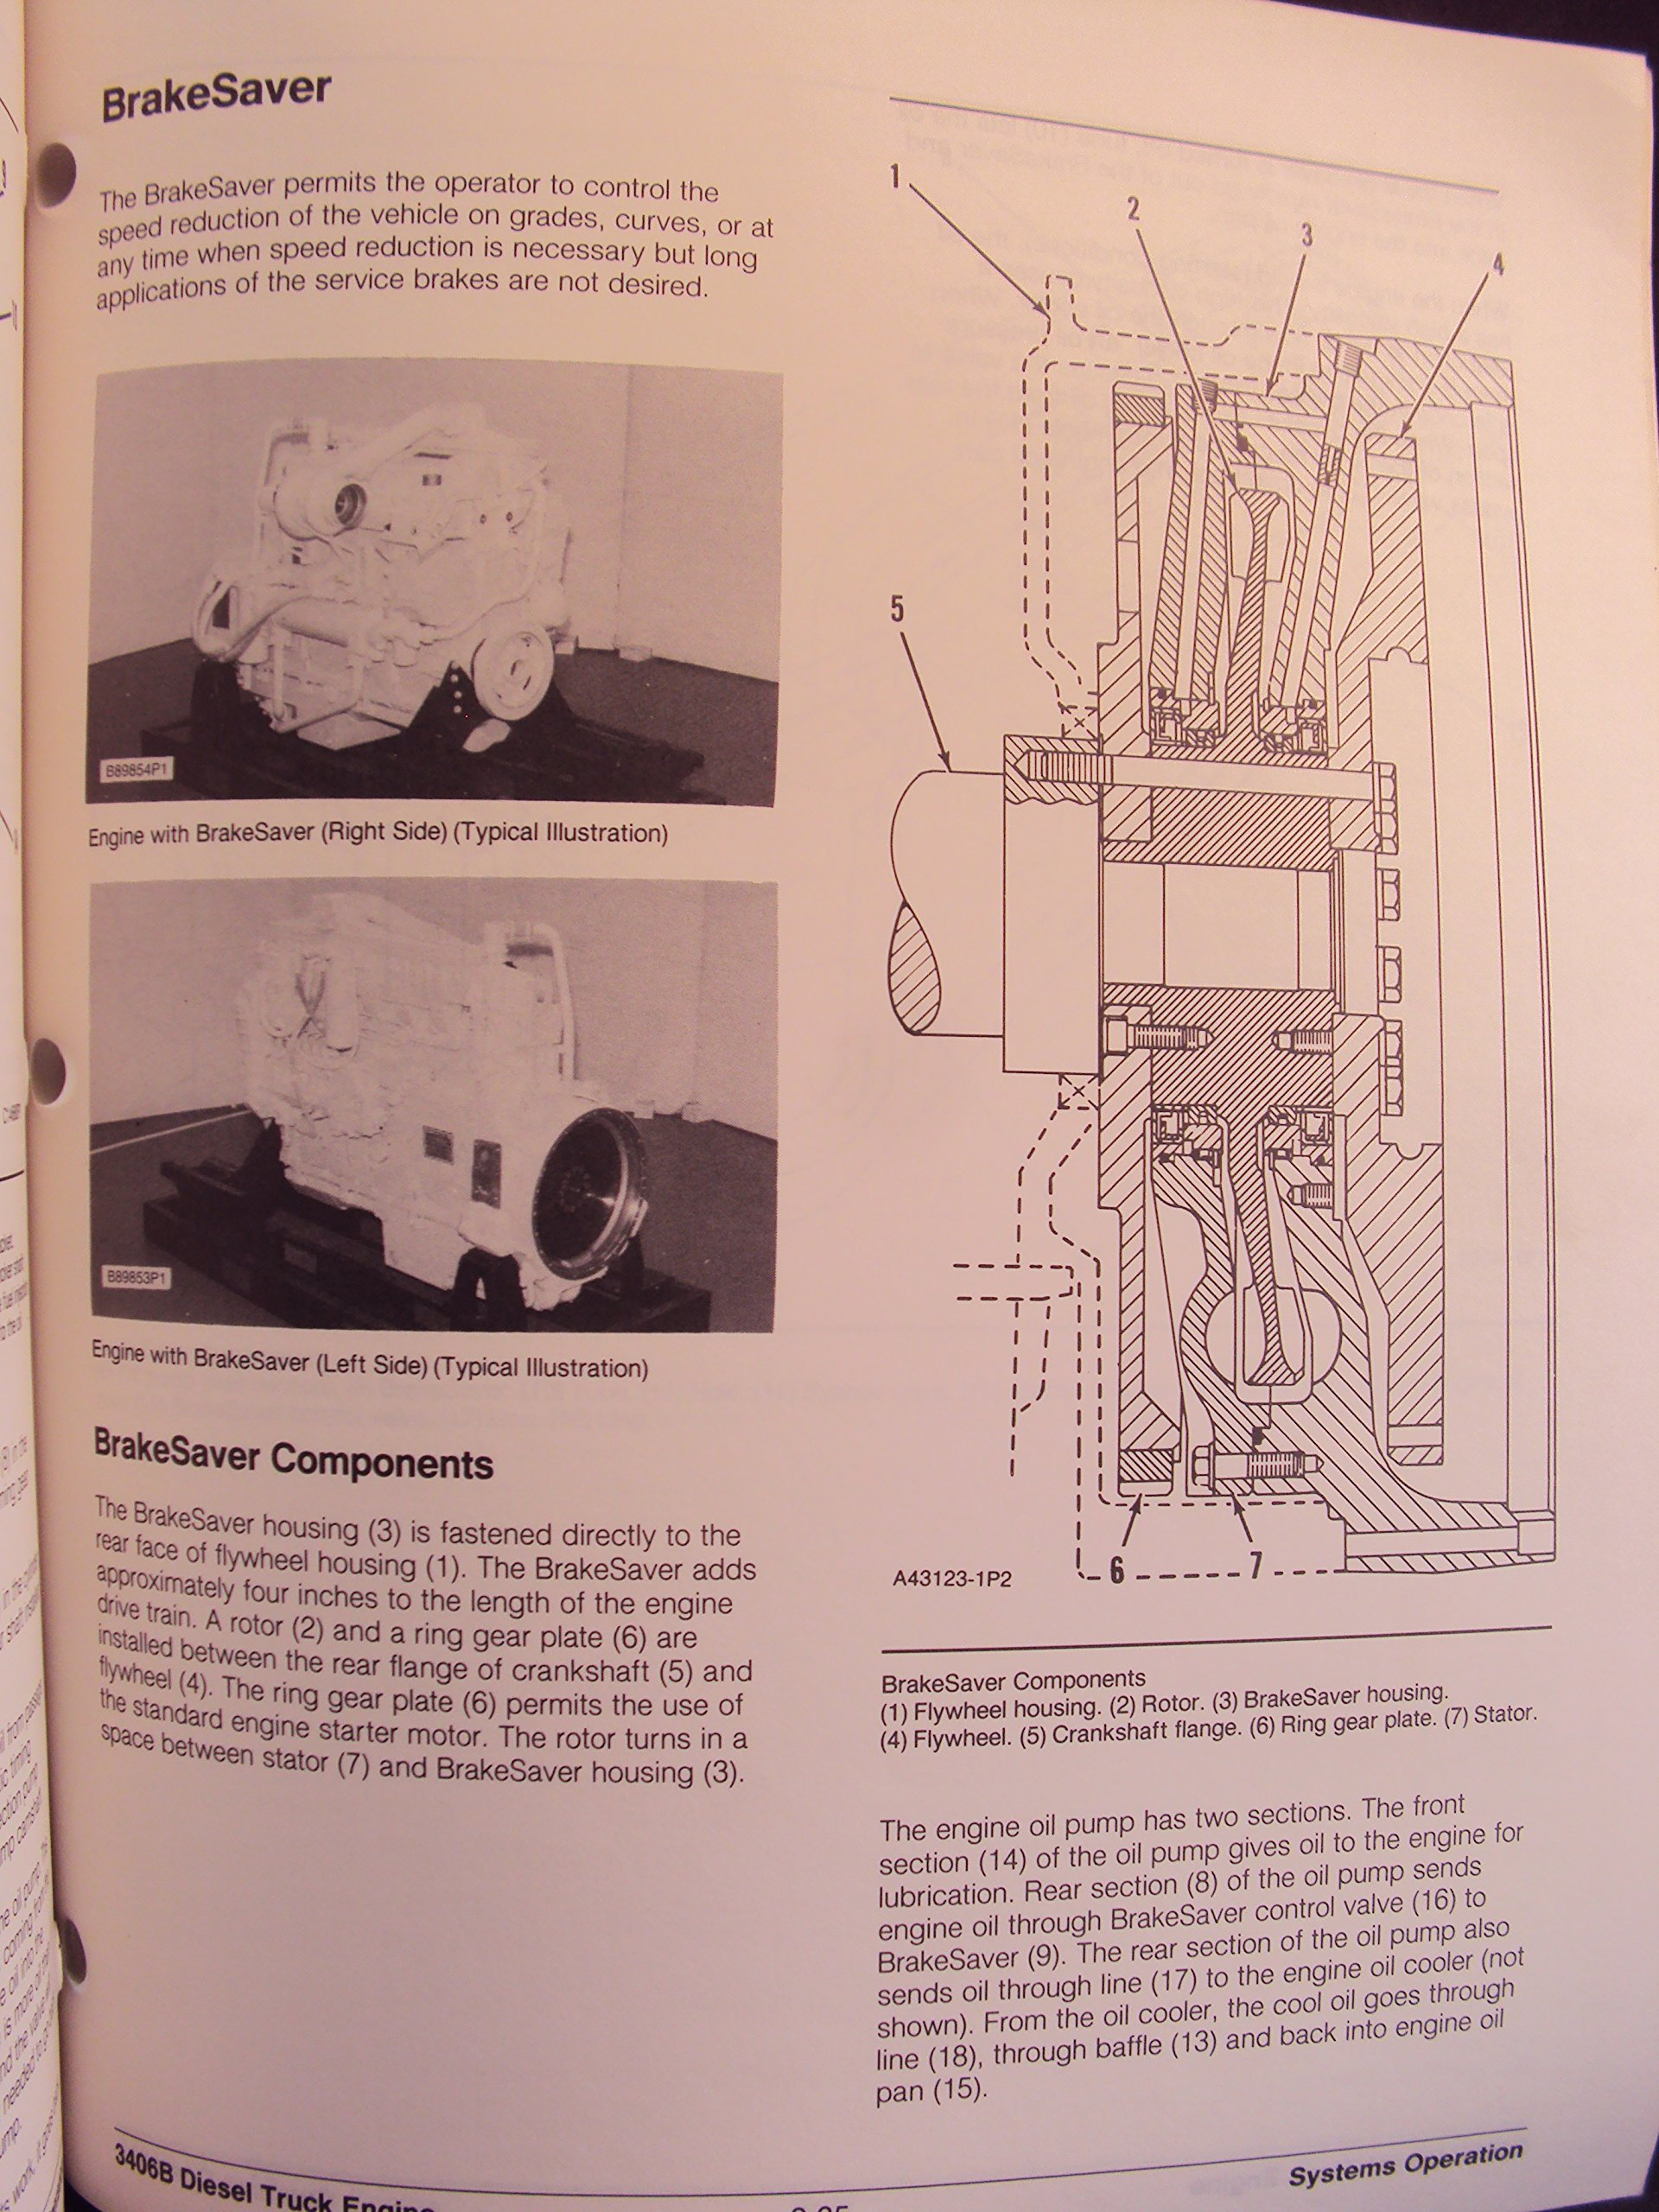 Mitsubishi Diesel Engine D3 4dr Industrial Maintenance Manual 3406b Diagram Motors Corporation Books